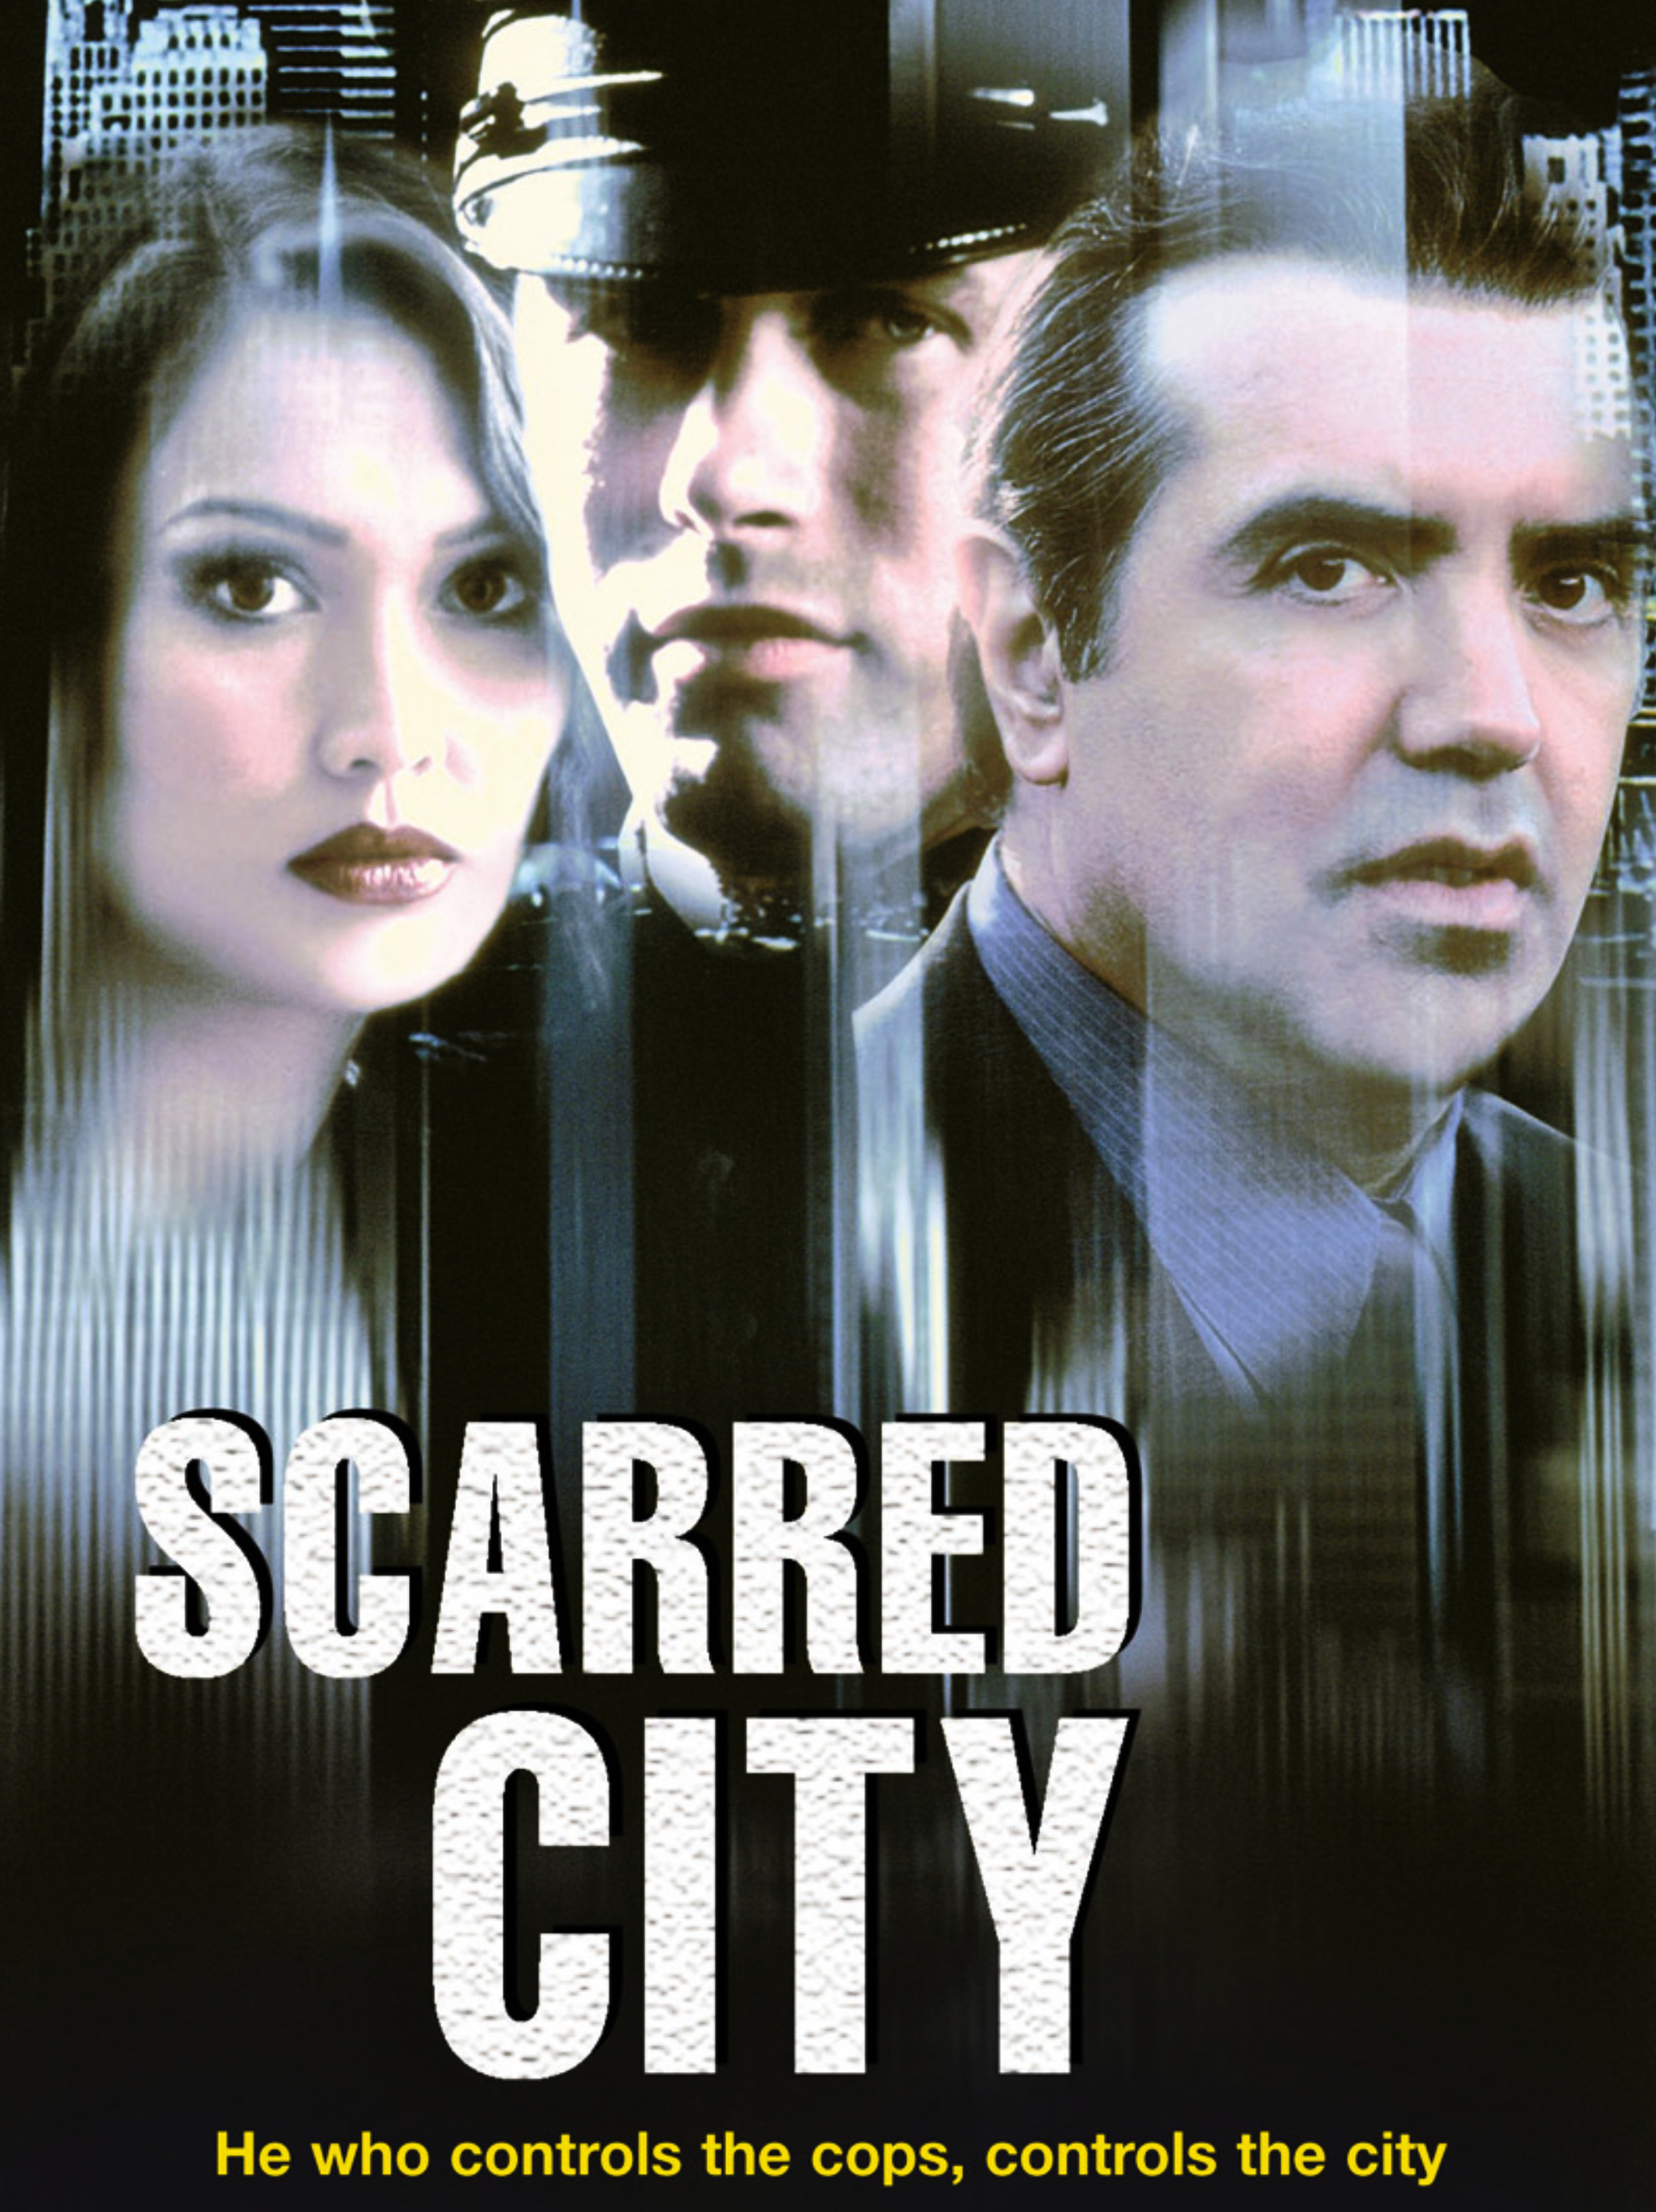 Scarred City - Score Catalog Artwork V1_CROP.jpg